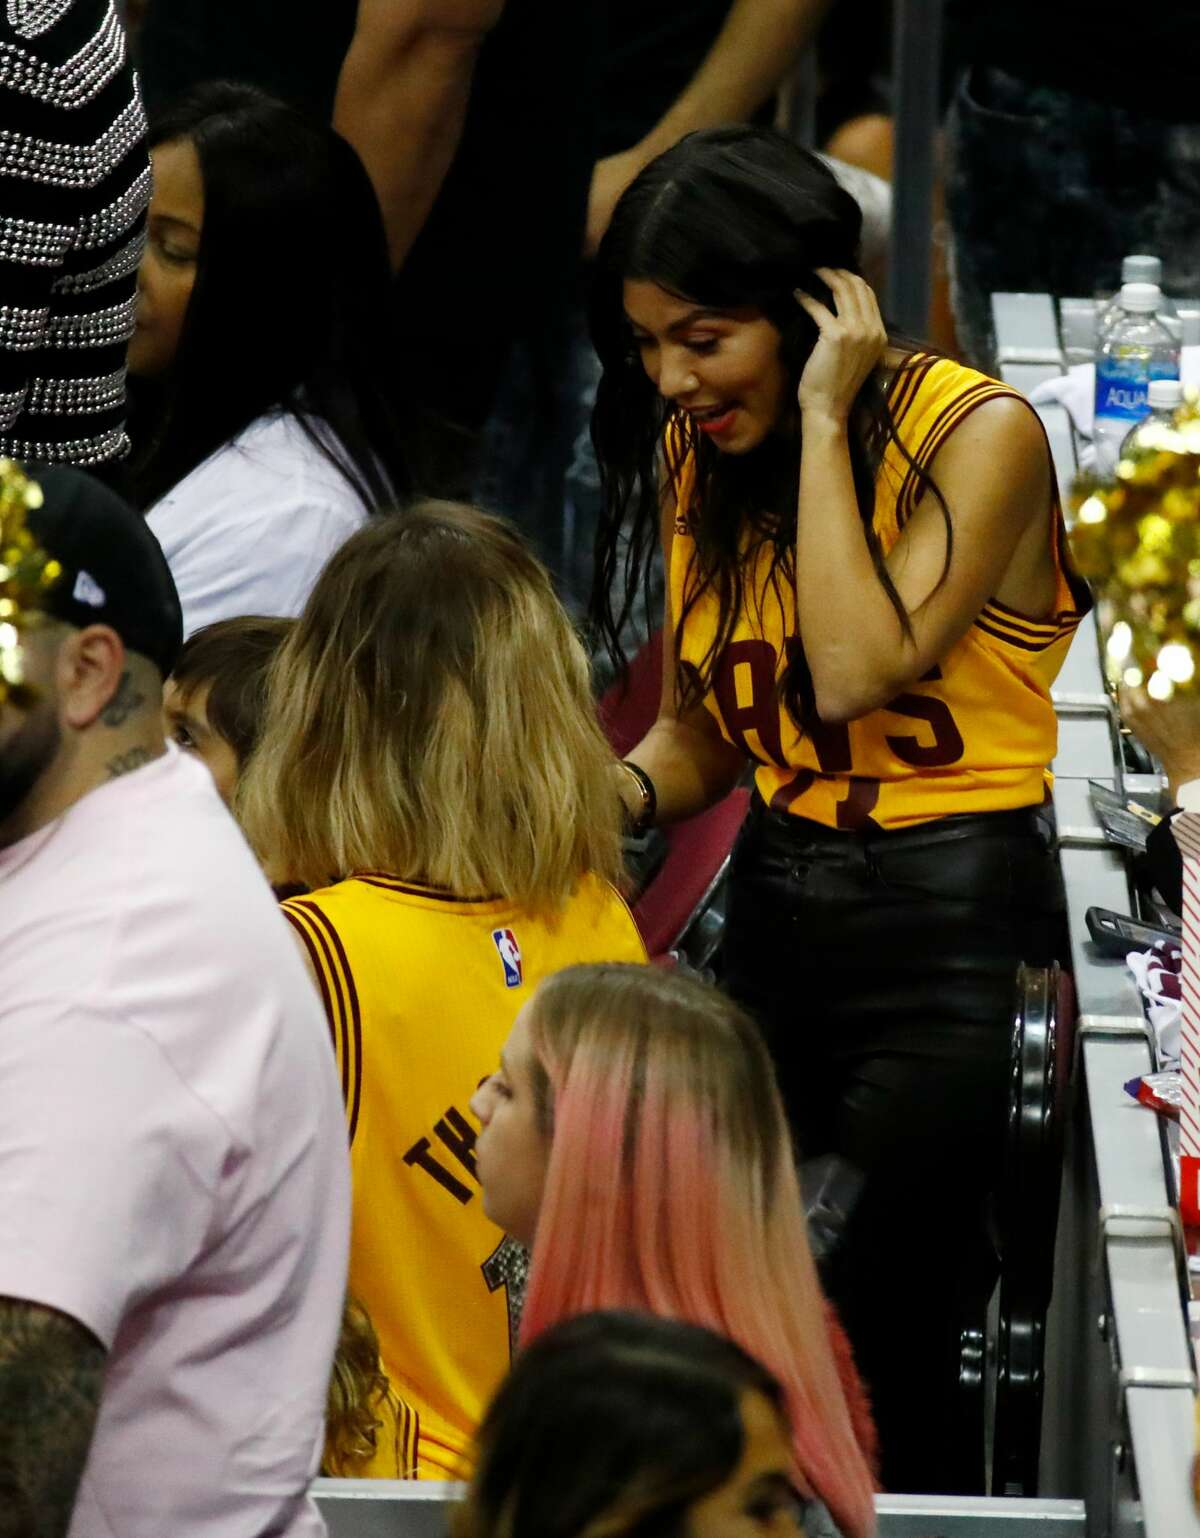 TV personality Kourtney Kardashian watches Game 4 of the 2017 NBA Finals between the Golden State Warriors and the Cleveland Cavaliers at Quicken Loans Arena on June 9, 2017 in Cleveland, Ohio.